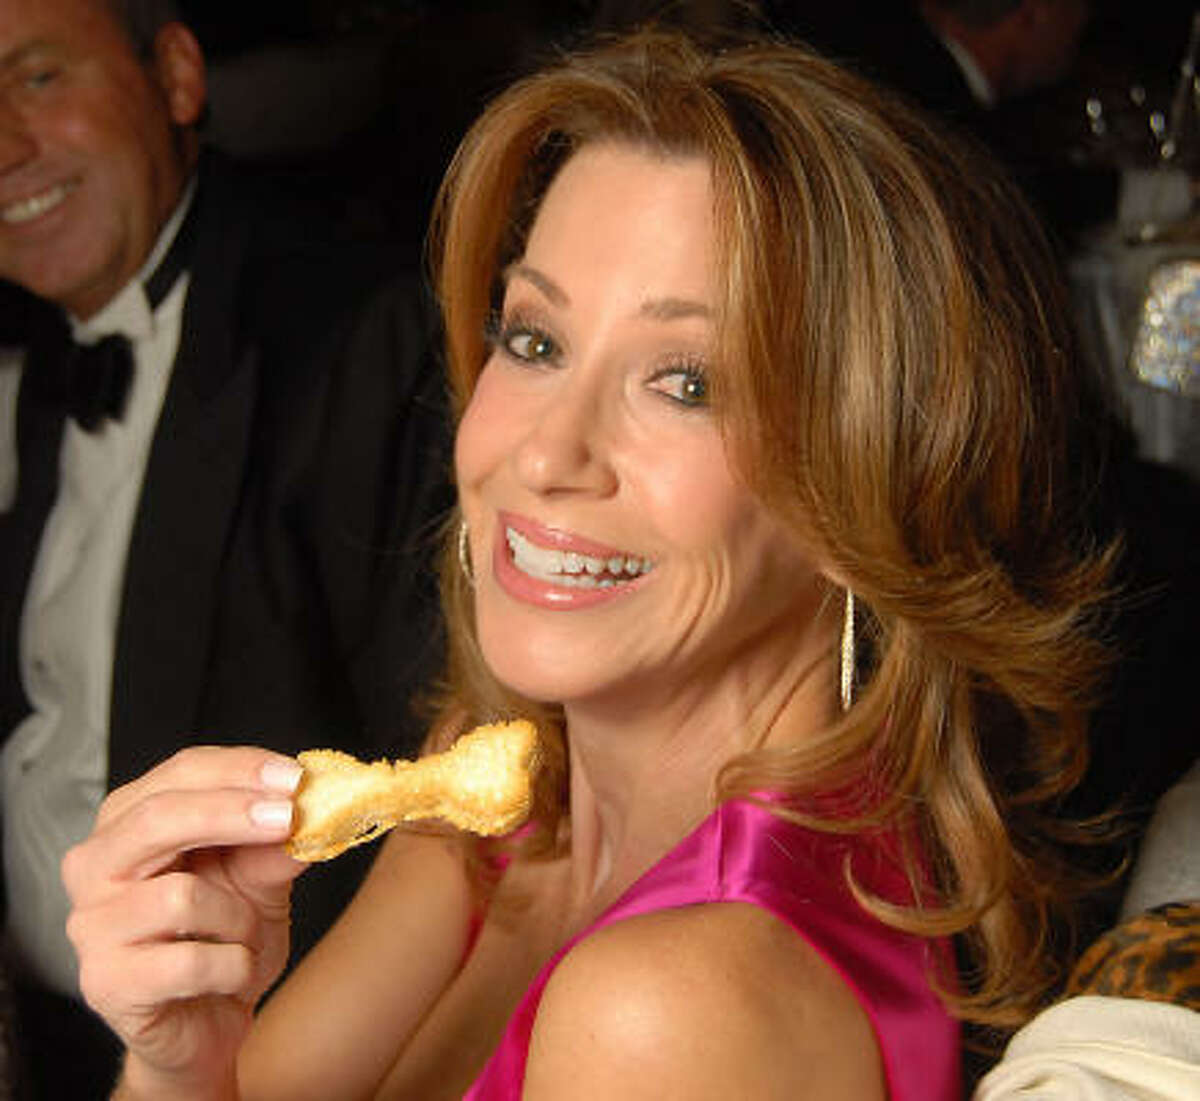 Kari Parsons with her bone-shaped bread at the 23rd Annual Celebrity Paws Gala.